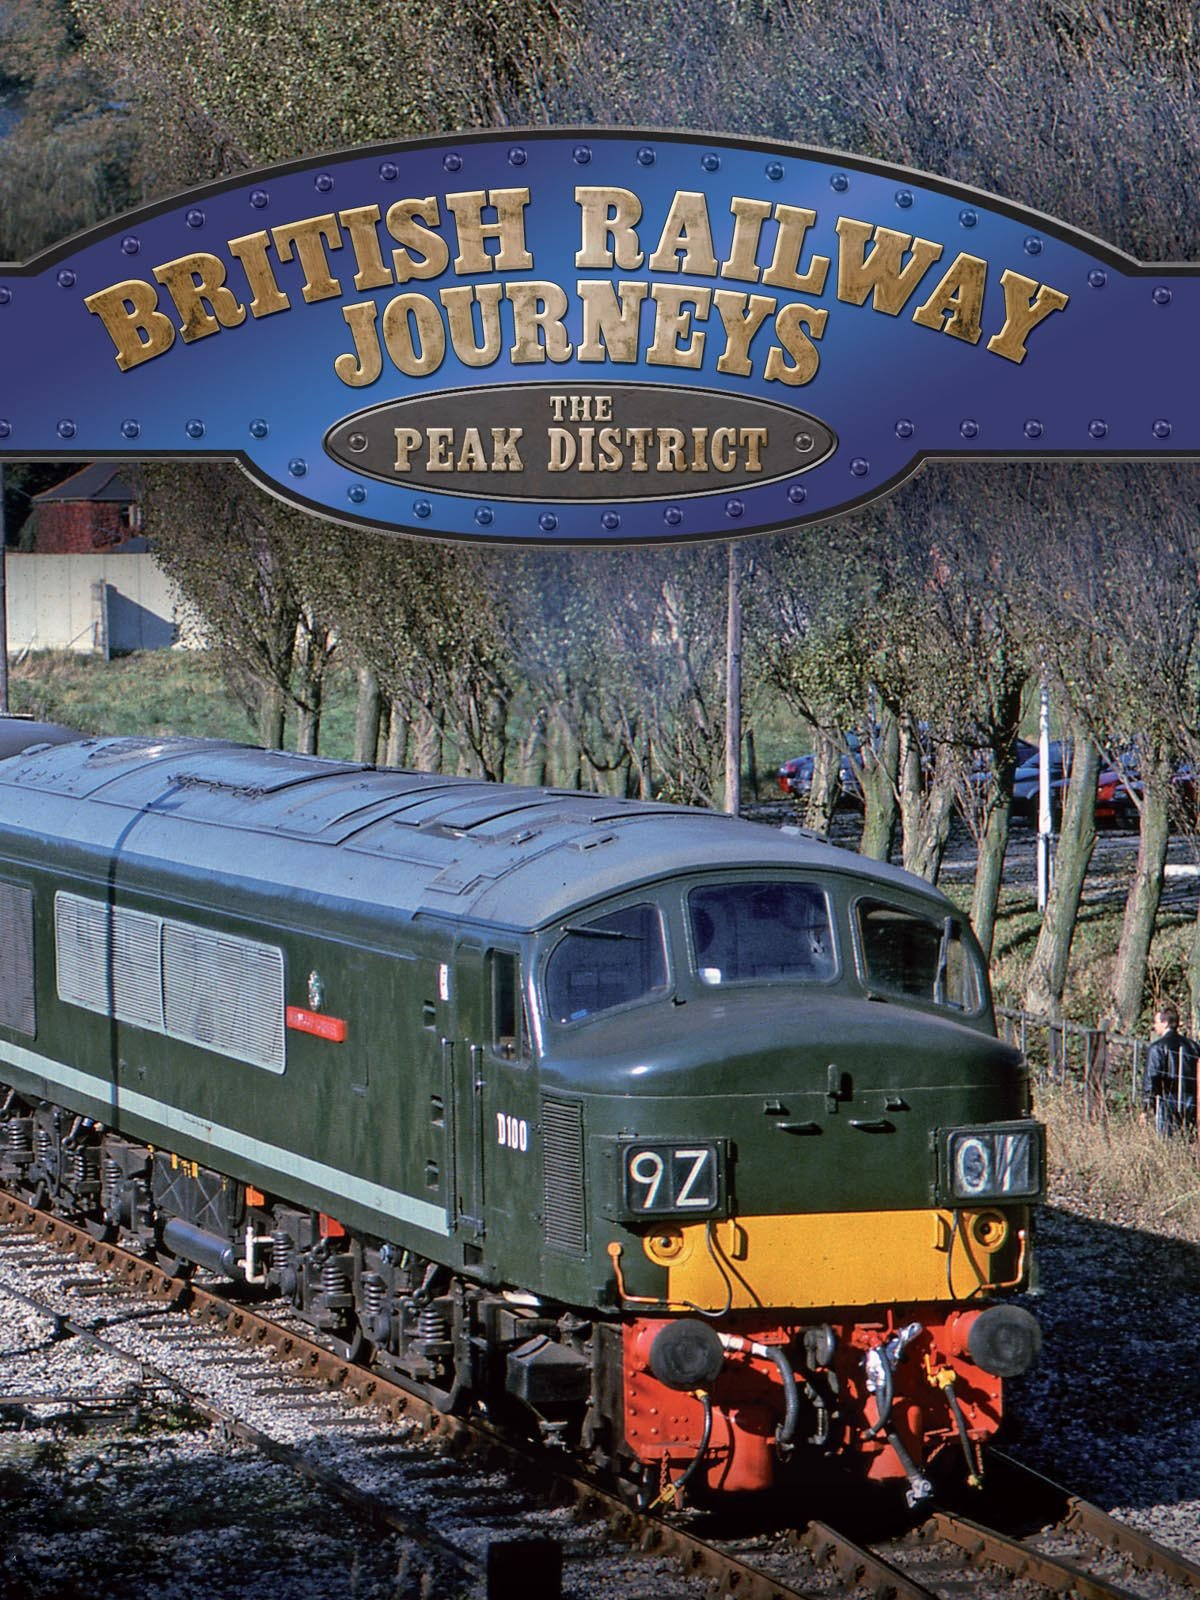 British Railway Journeys: The Peak District